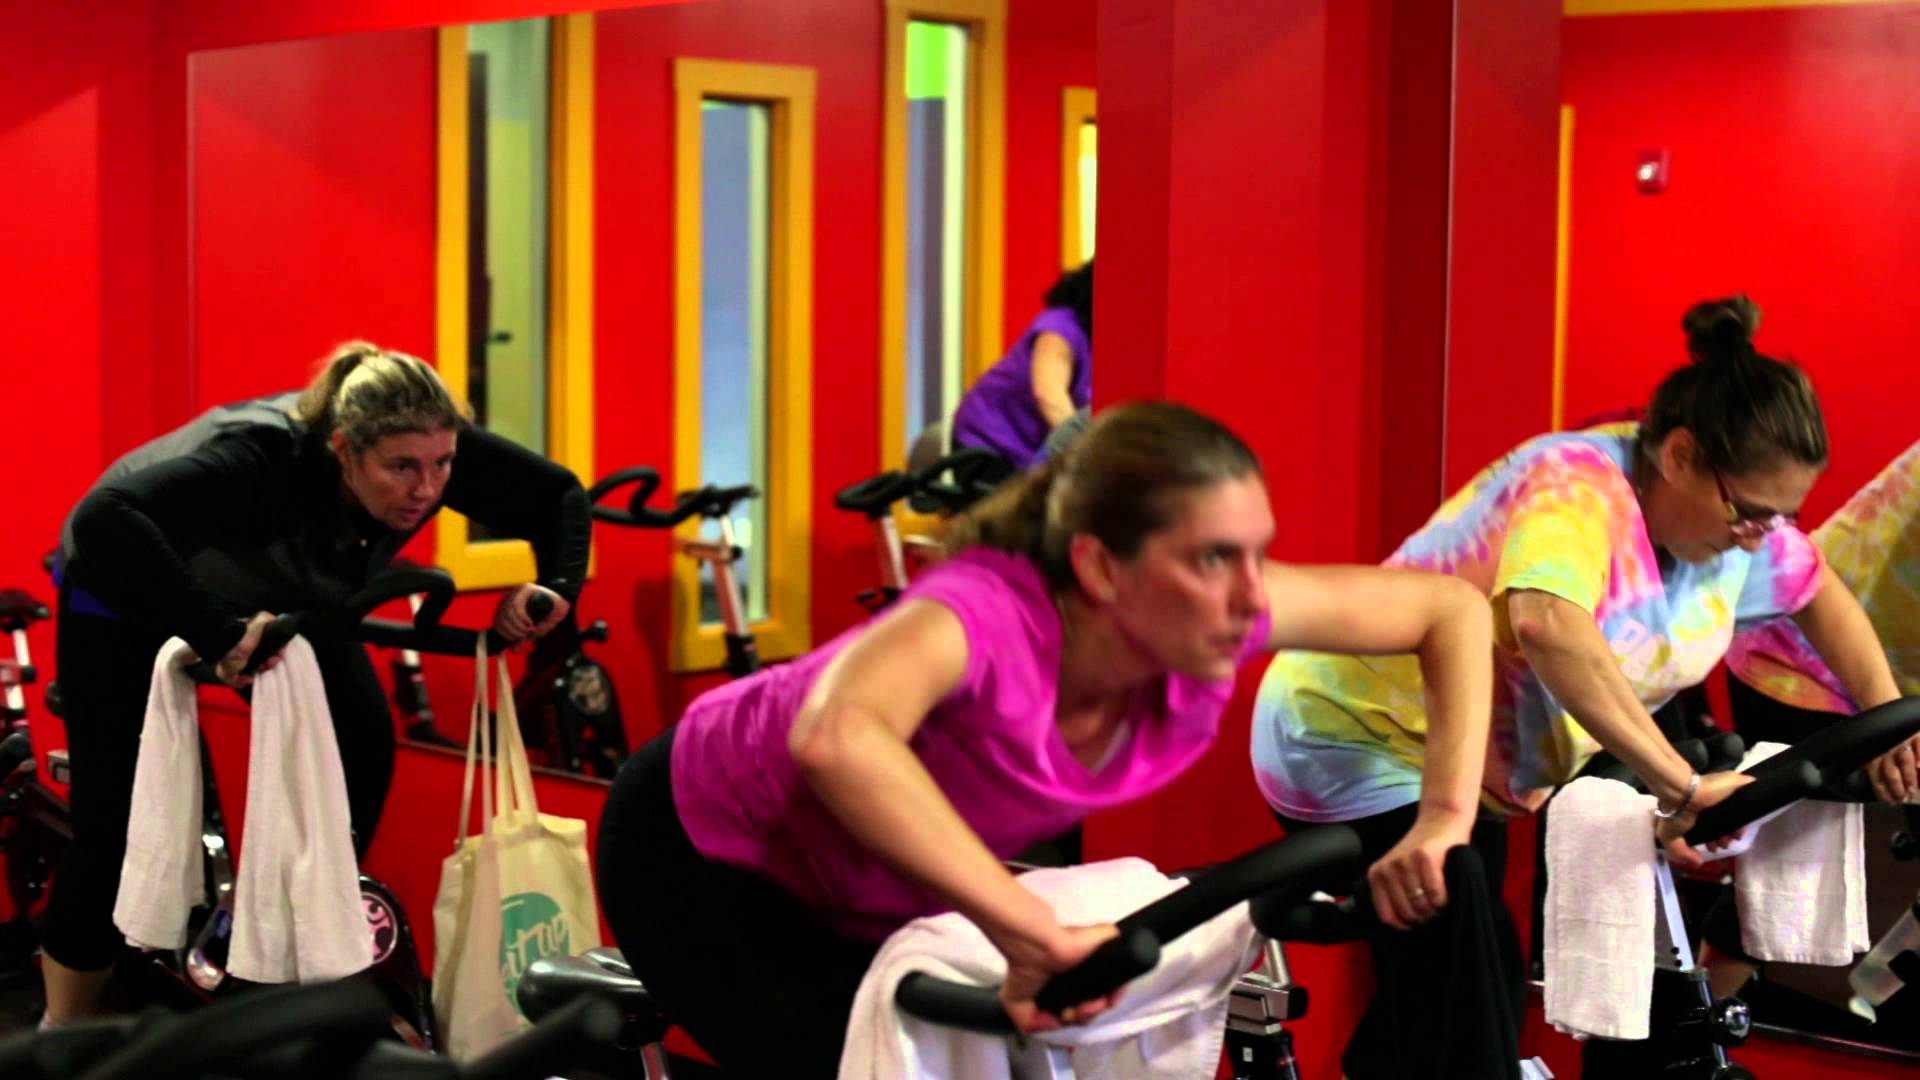 HIIT Spin